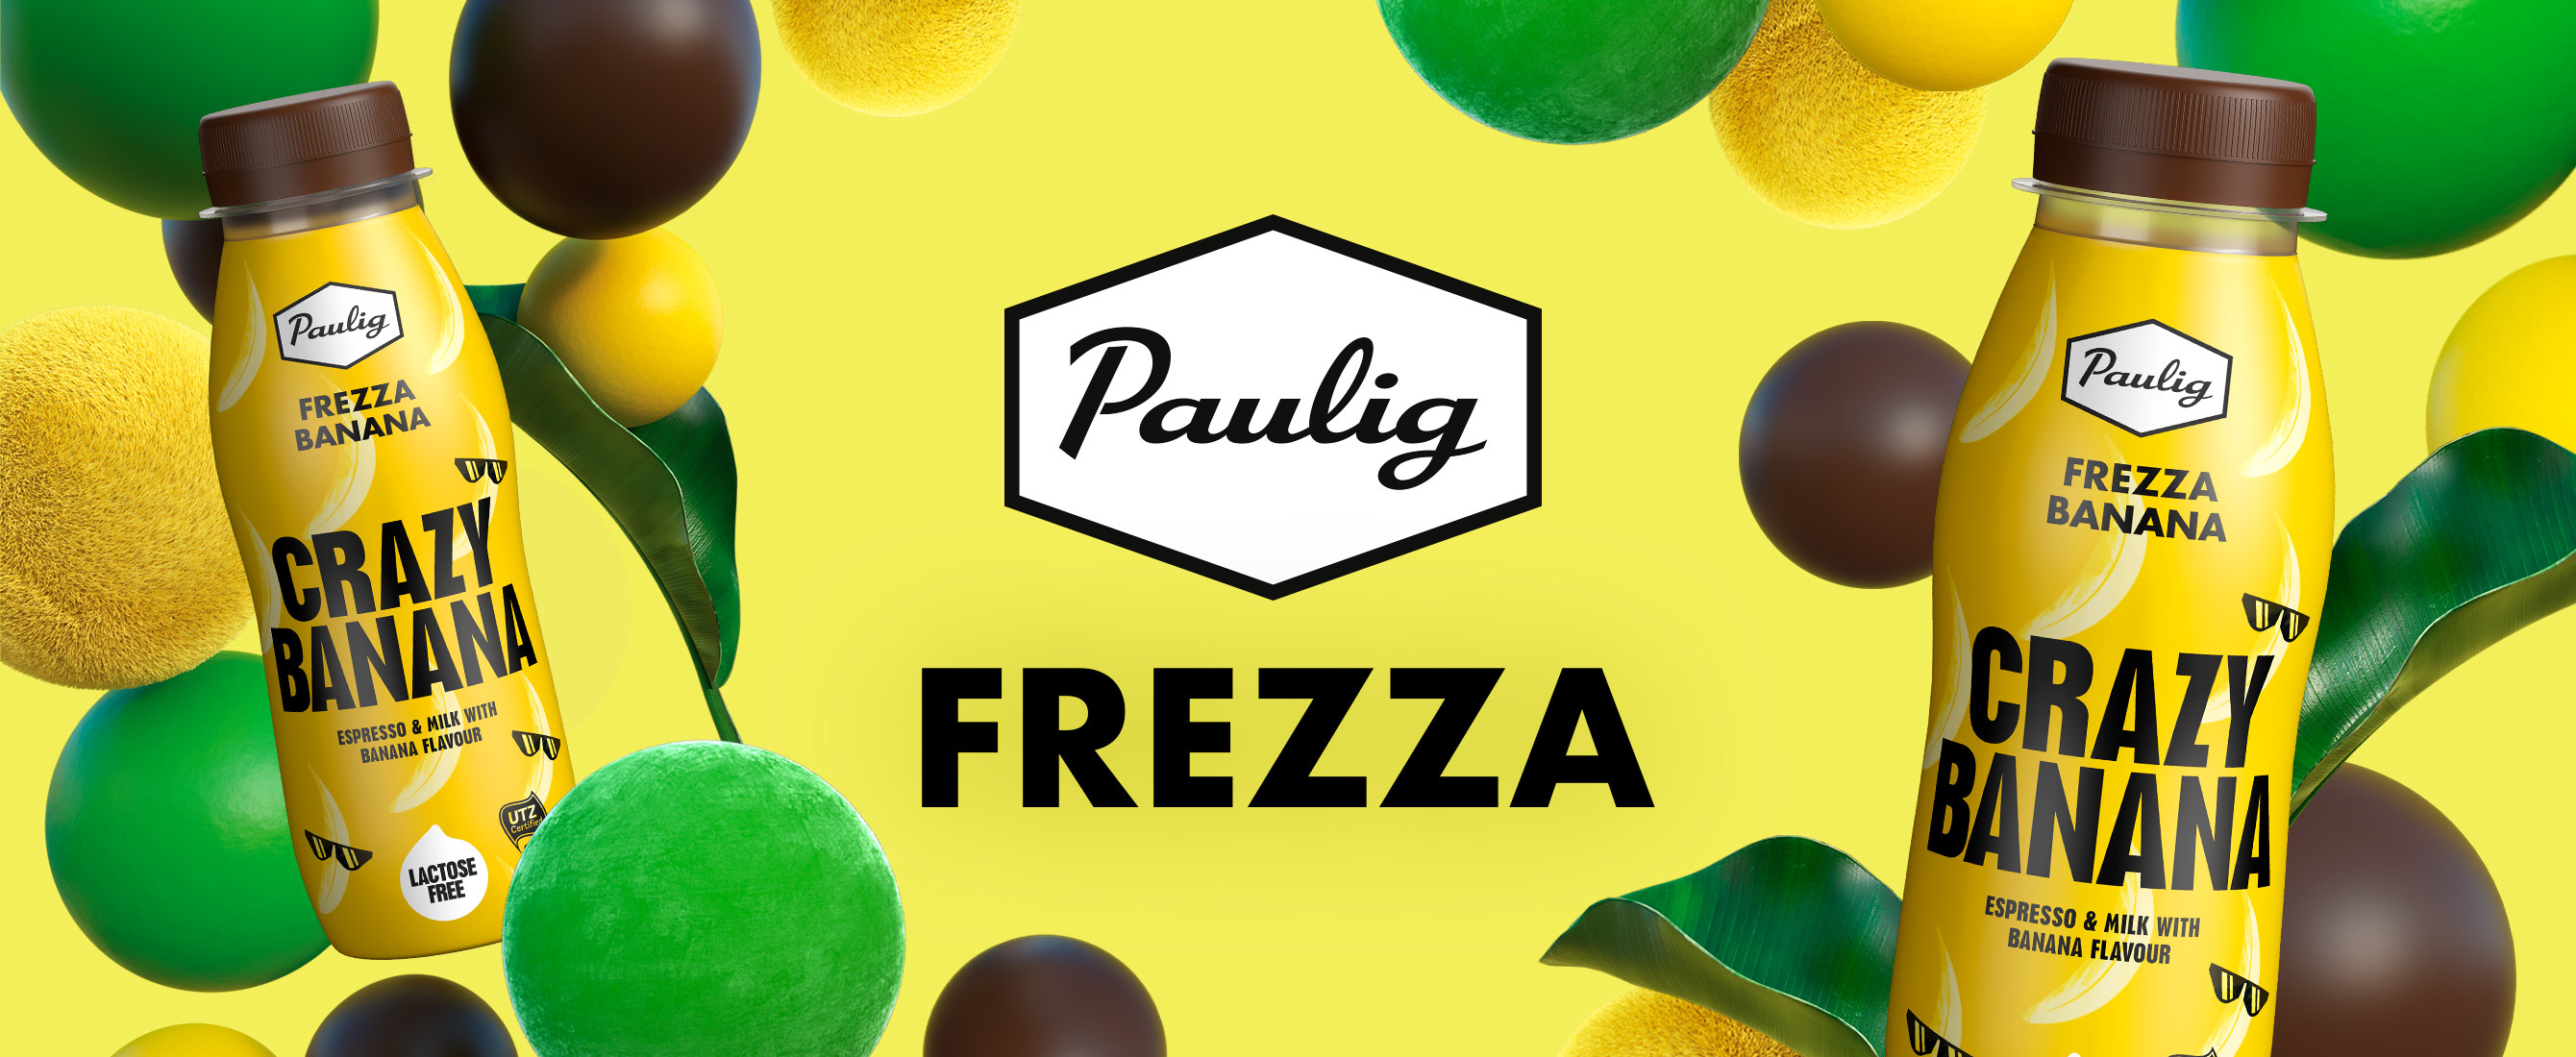 Frezza logo and bottles on yellow background with colorful shapes